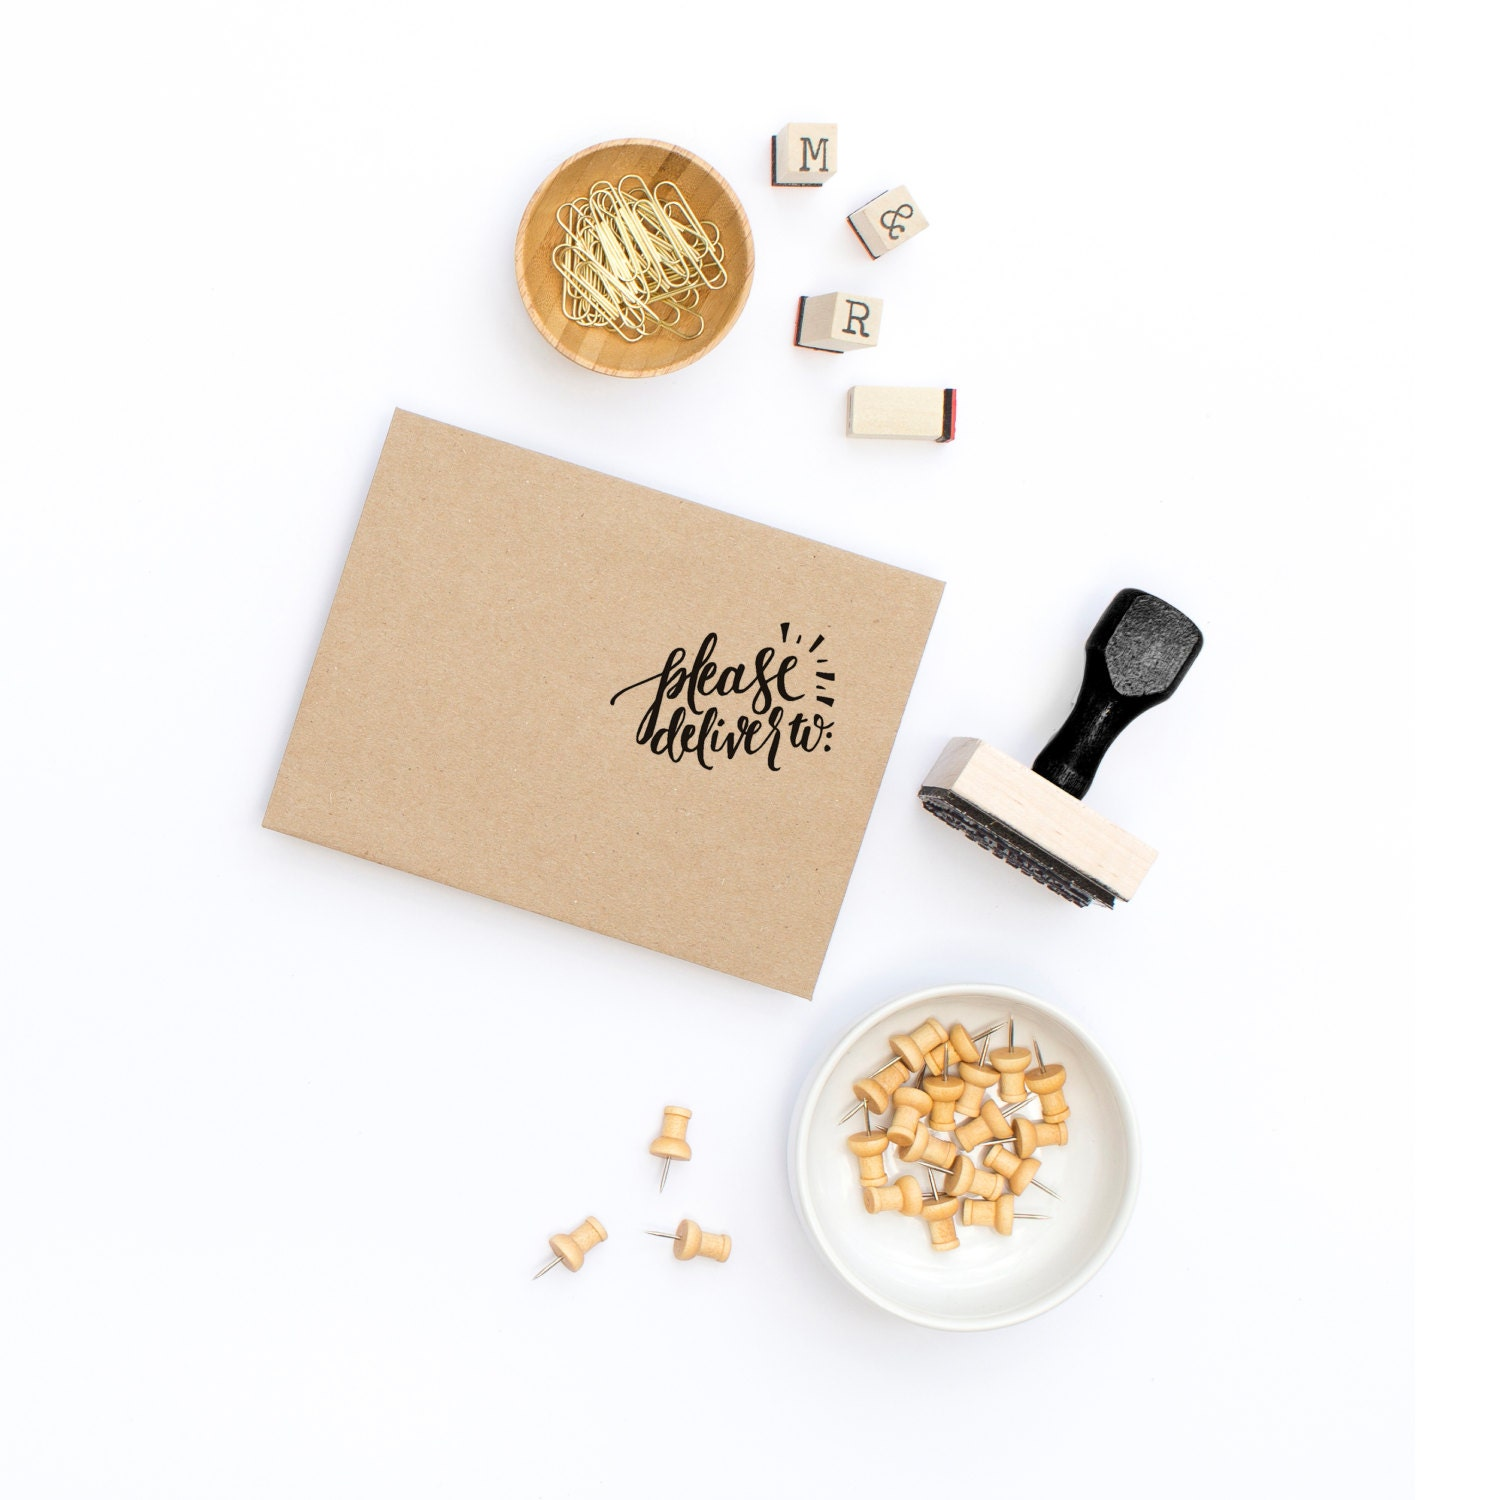 Hand Lettered Stamp Rubber Stamp Calligraphy Stamp